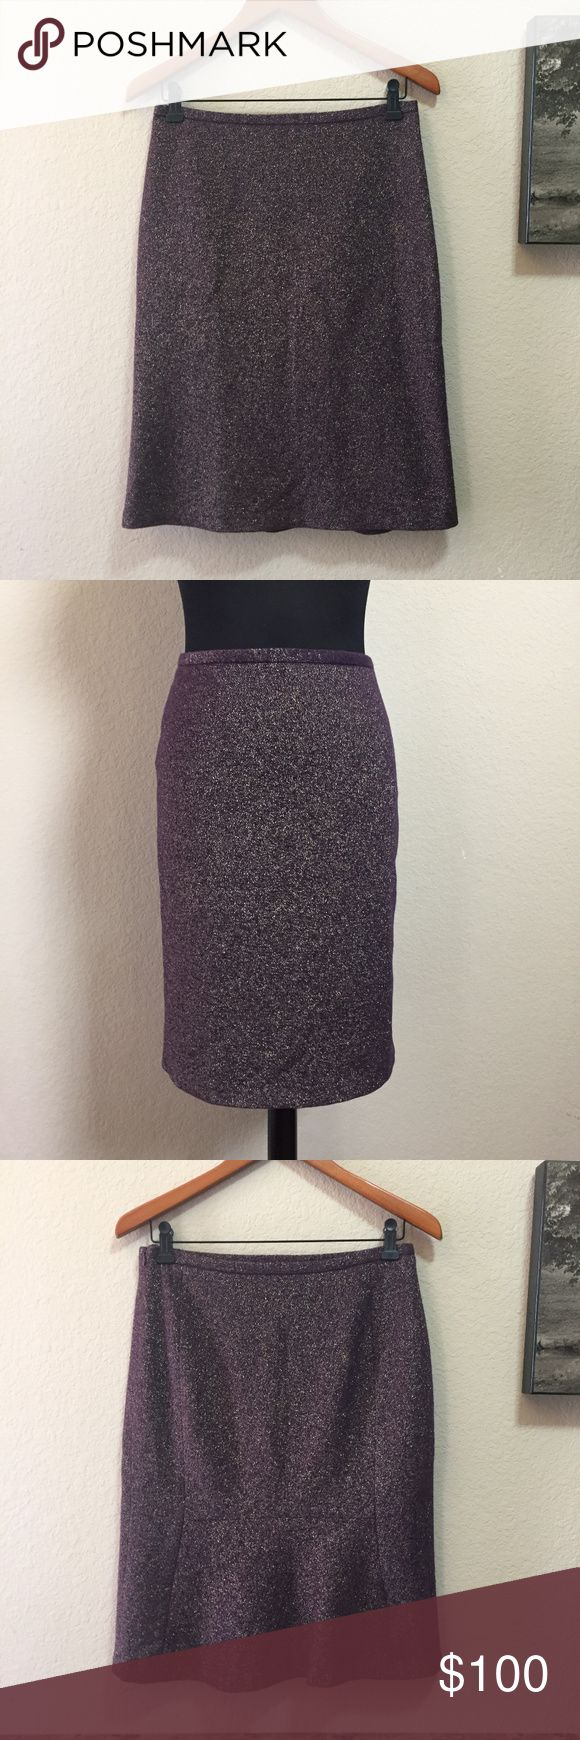 French Connection Brocade Tweed Wool Pencil Skirt! Worn once; in near perfect condition! French Connection wool blend tweed pencil skirt! Plum purple with gold brocade throughout. Hanging straps; invisible side zipper; navy lining. Pencil style front, hits just below the knee; back has stylish seaming & slight ruffle/flare tail hem. Self 69% wool, 26% nylon, 4% polyester, & 1% elastane. Lining 100% acetate. Size 6; see measurement photo. No trades! French Connection Skirts Pencil